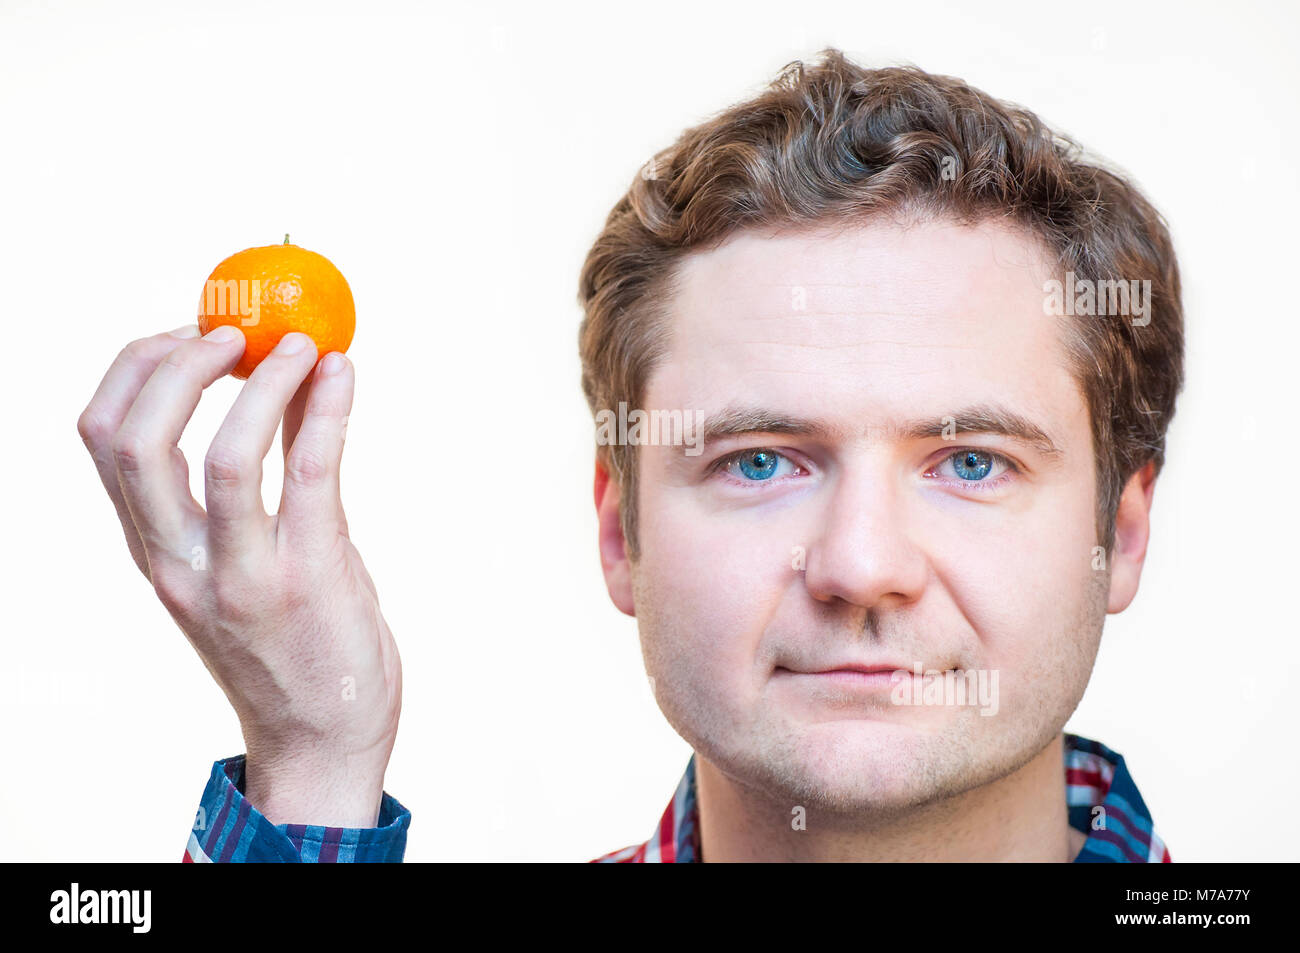 Portrait of young blue-eyed Woman ethnie man holding mandarine dans main droite près de sa tête sur fond Photo Stock